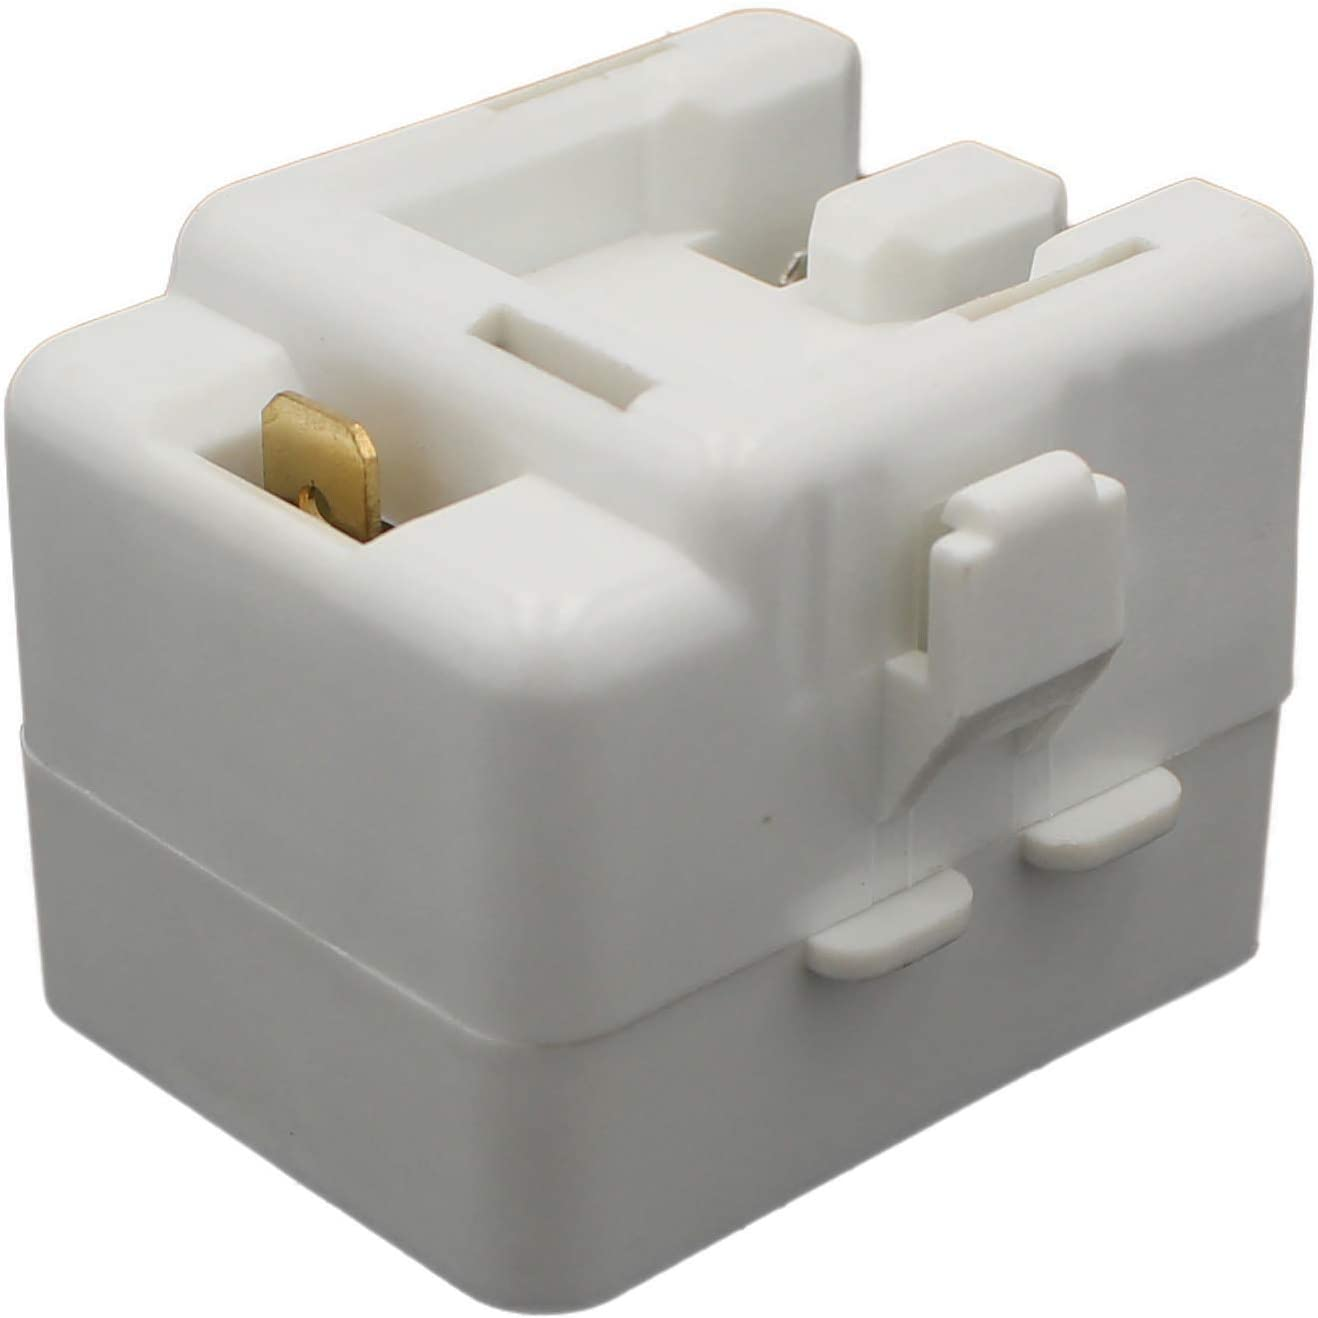 Supplying Demand 61005518 Start Relay For Refrigerator Compatible With Maytag Compatible With Amana